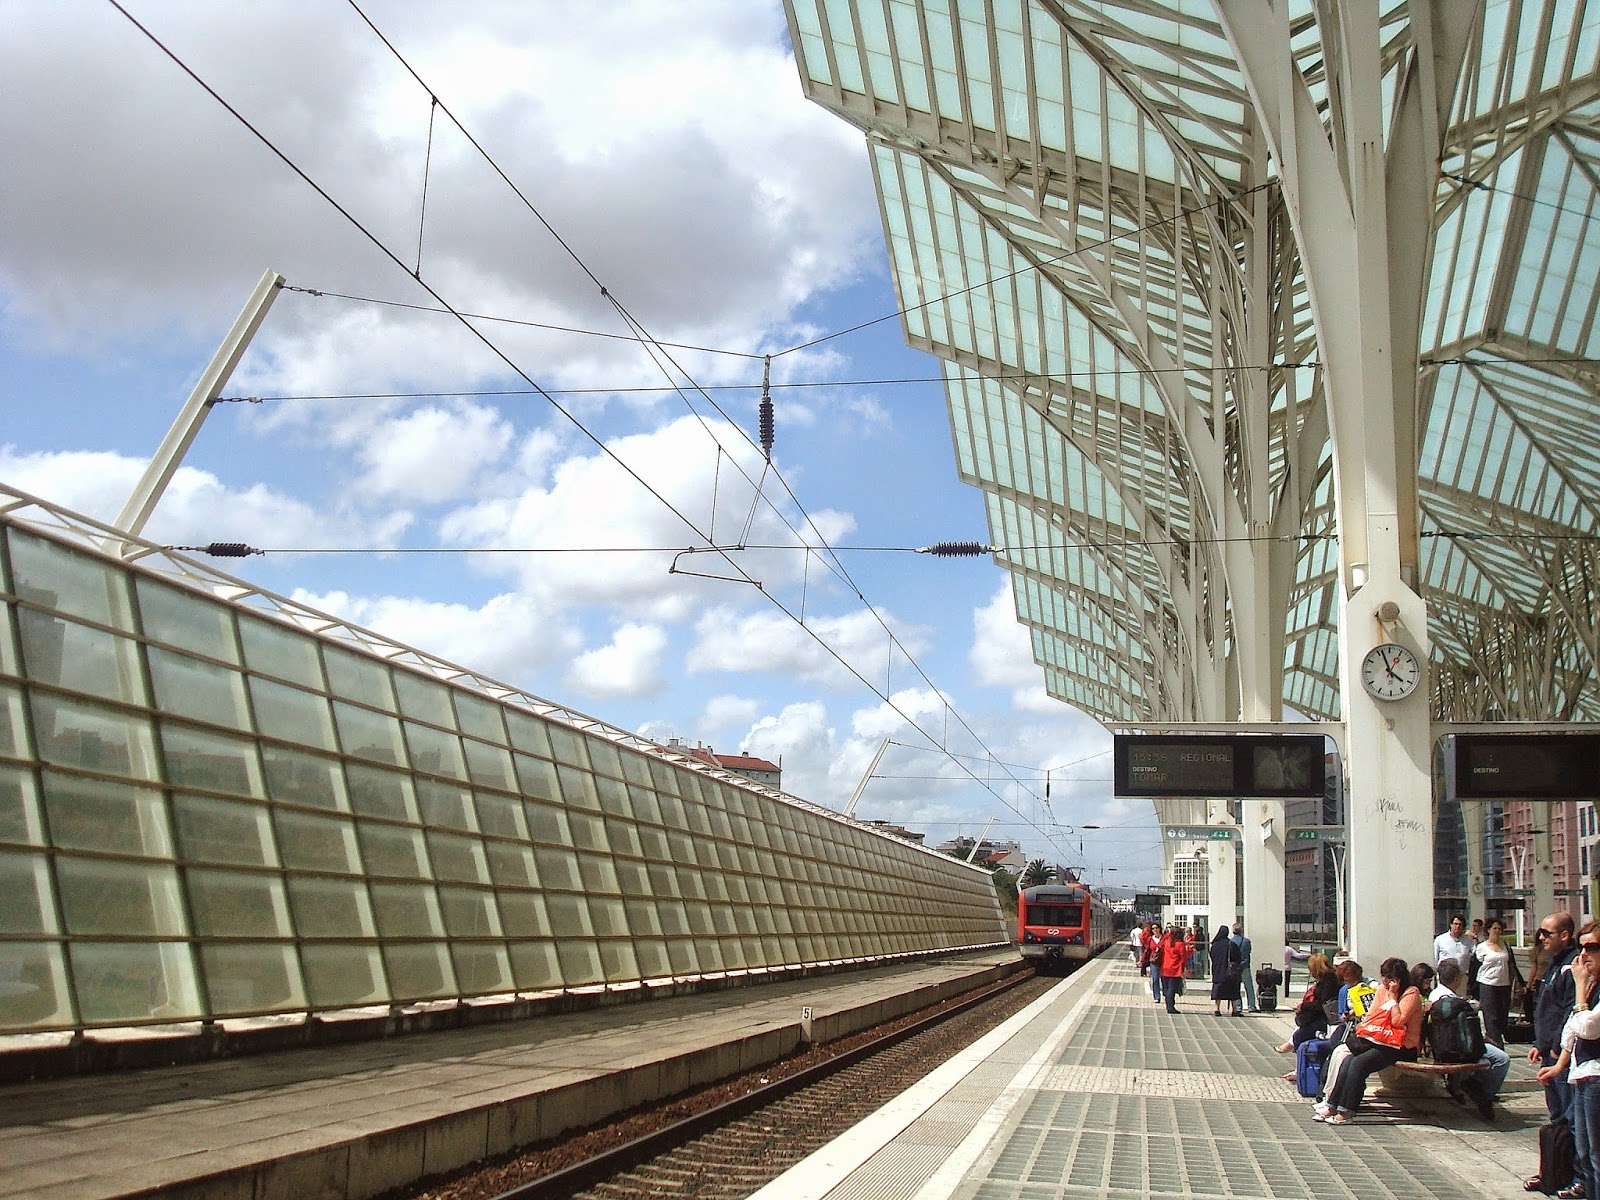 Gare Do Oriente, Lisboa